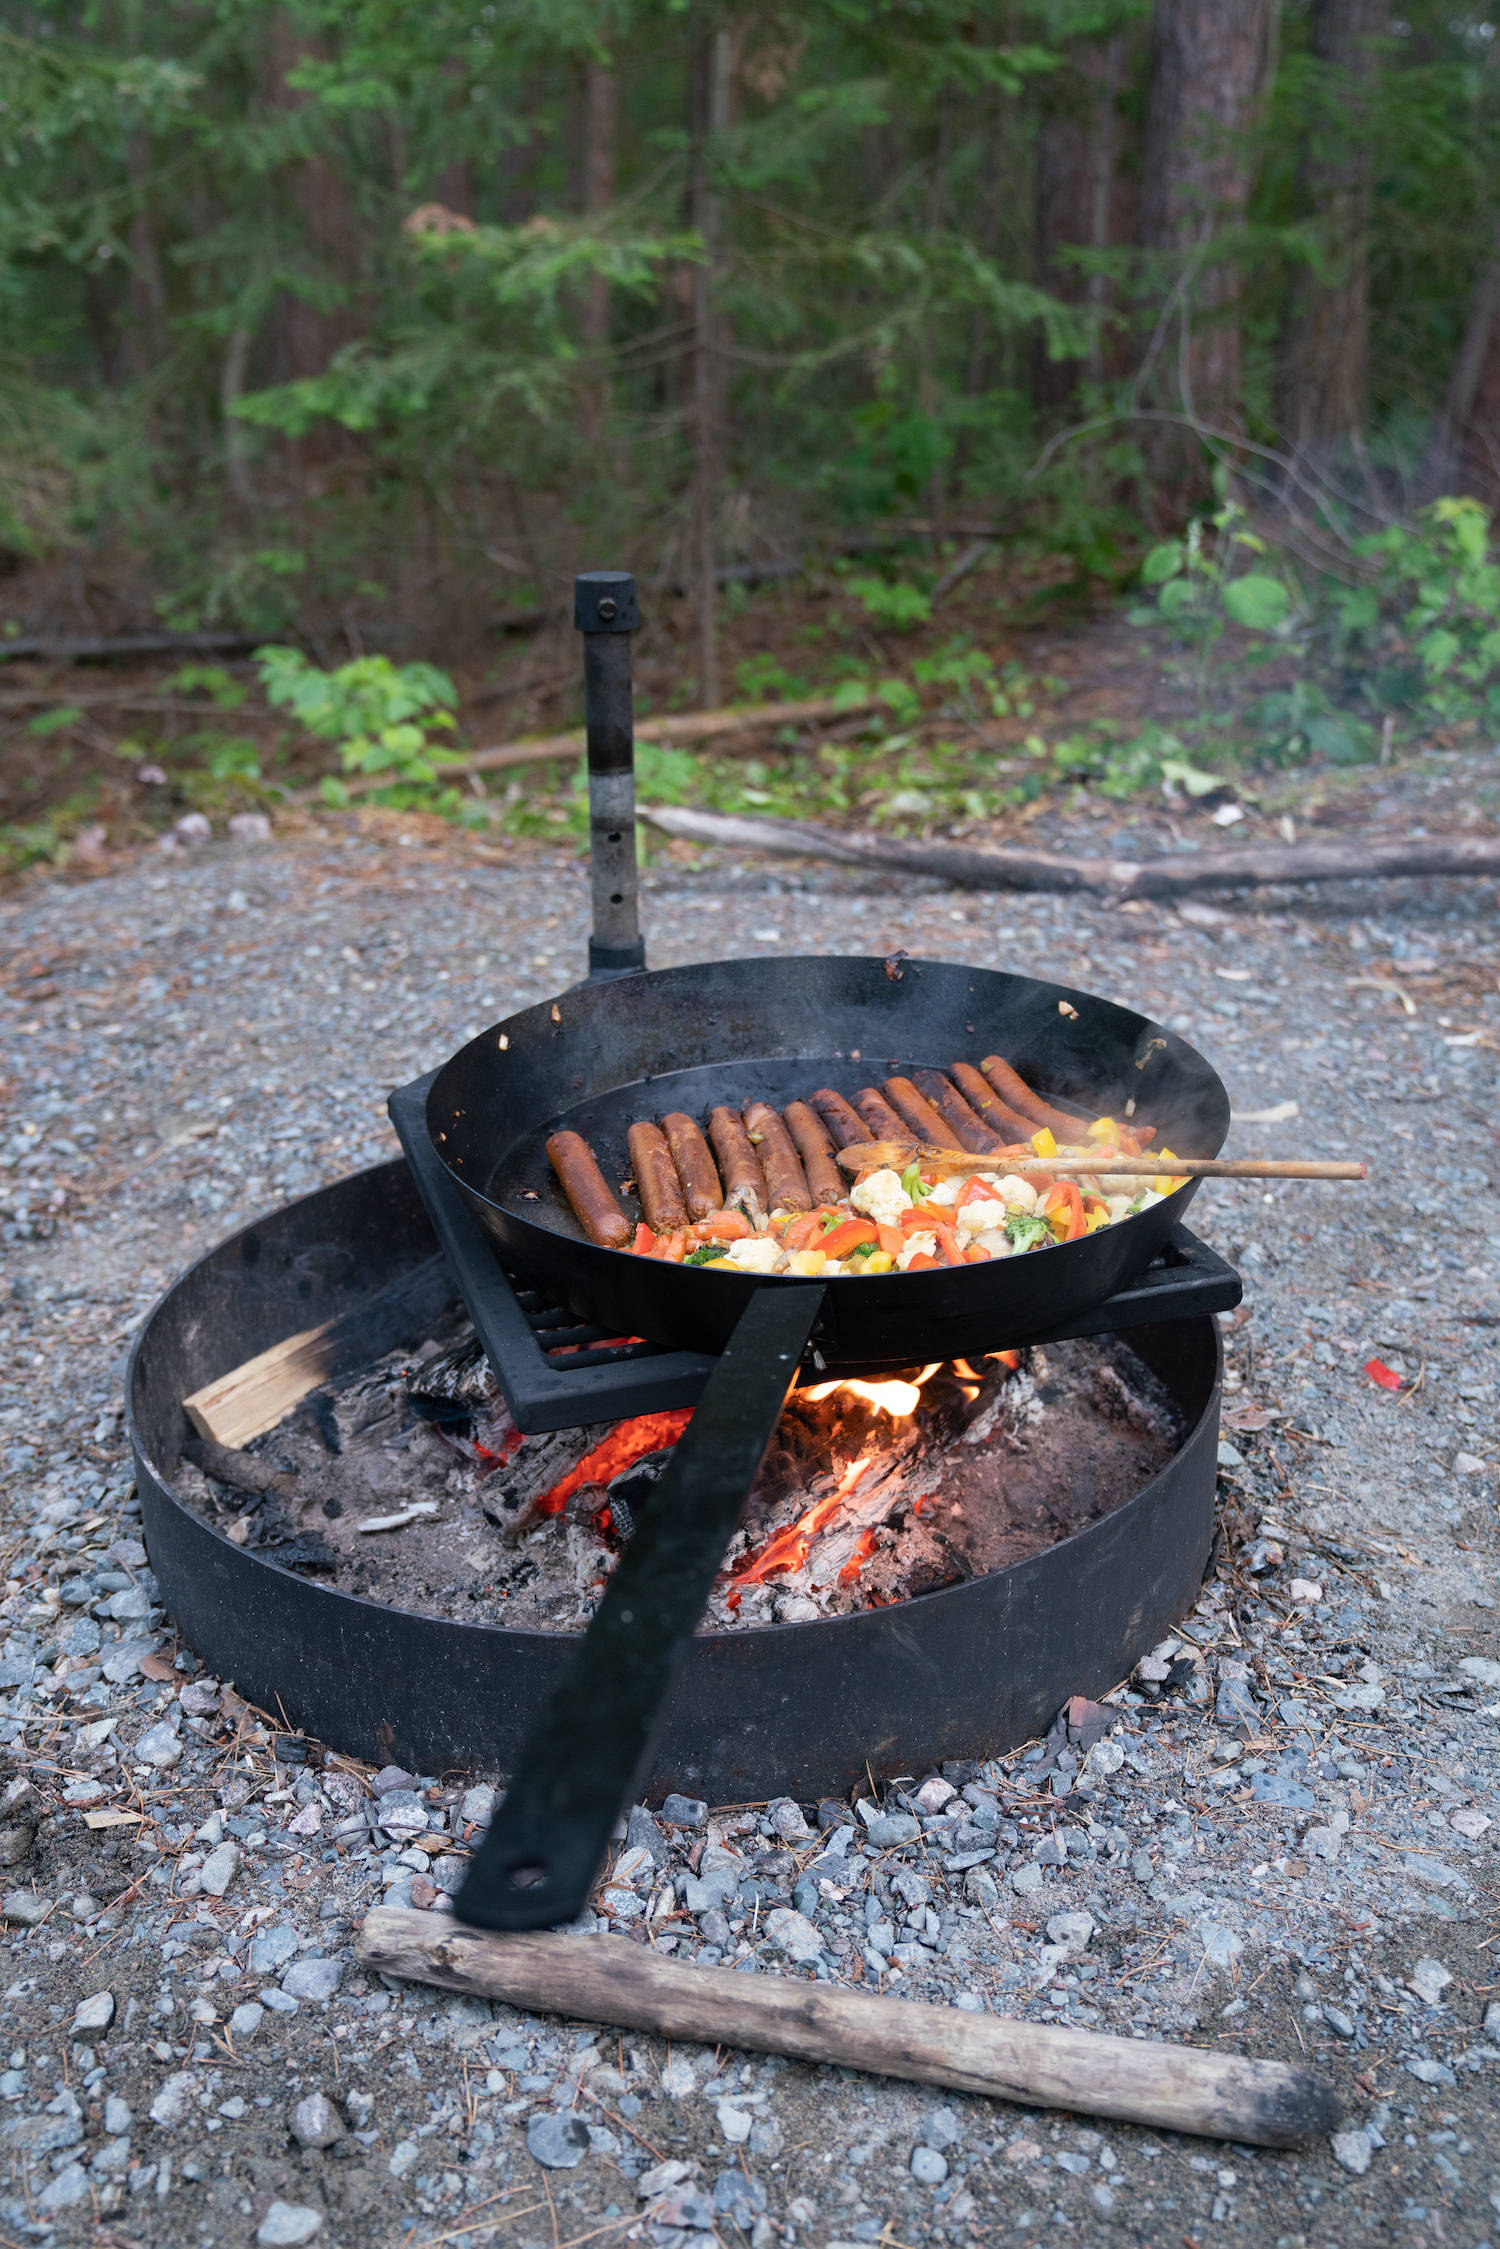 vegan camp food over open fire